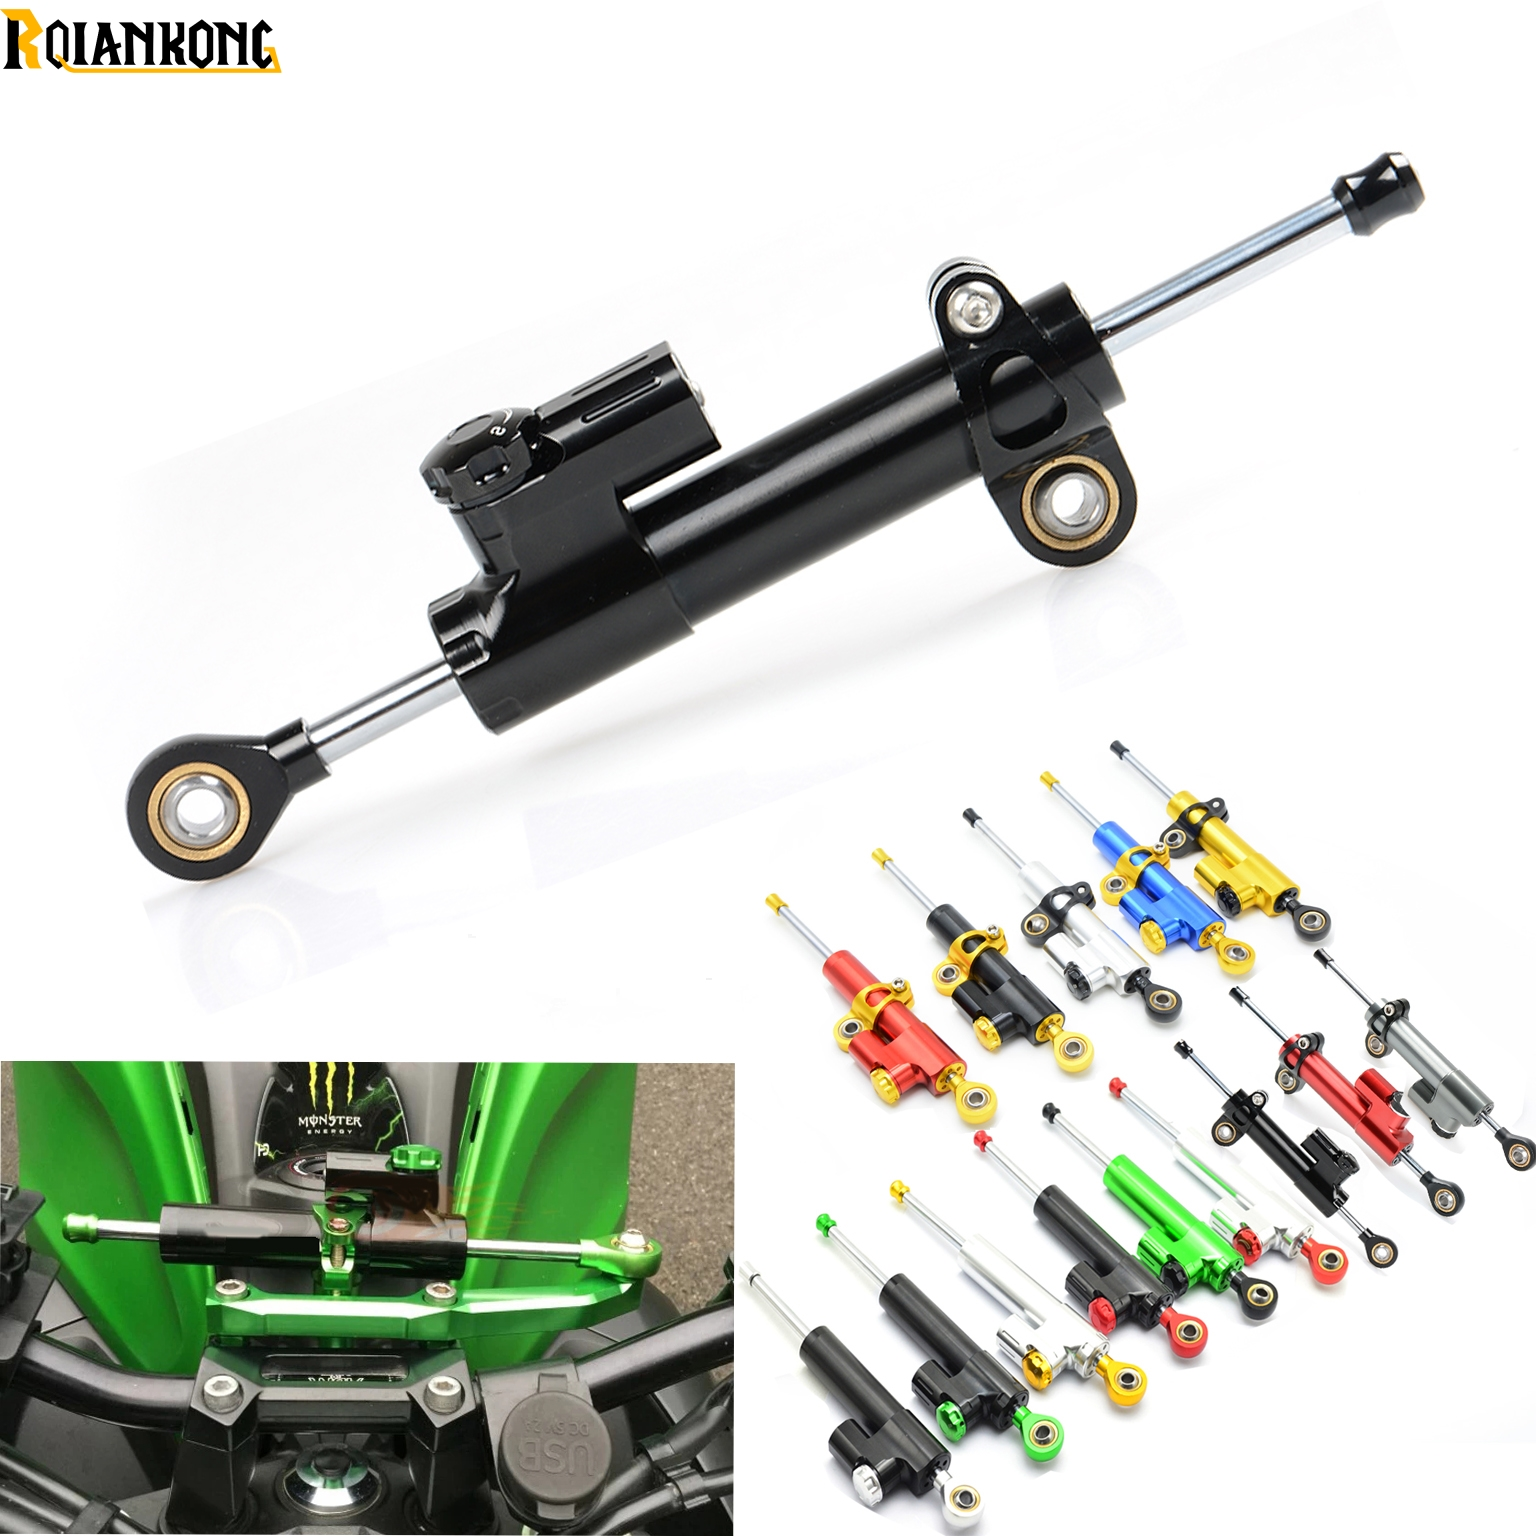 CNC Aluminum Motorcycle Steering Damper Stabilizer Linear Safe Control for KTM 200 250 390 690 990 Duke RC SMC/SMCR Enduro R for ktm 200 duke 2013 2014 390 duke 2014 2015 2016 motorcycle accessories steering damper stabilizer with mounting bracket kit